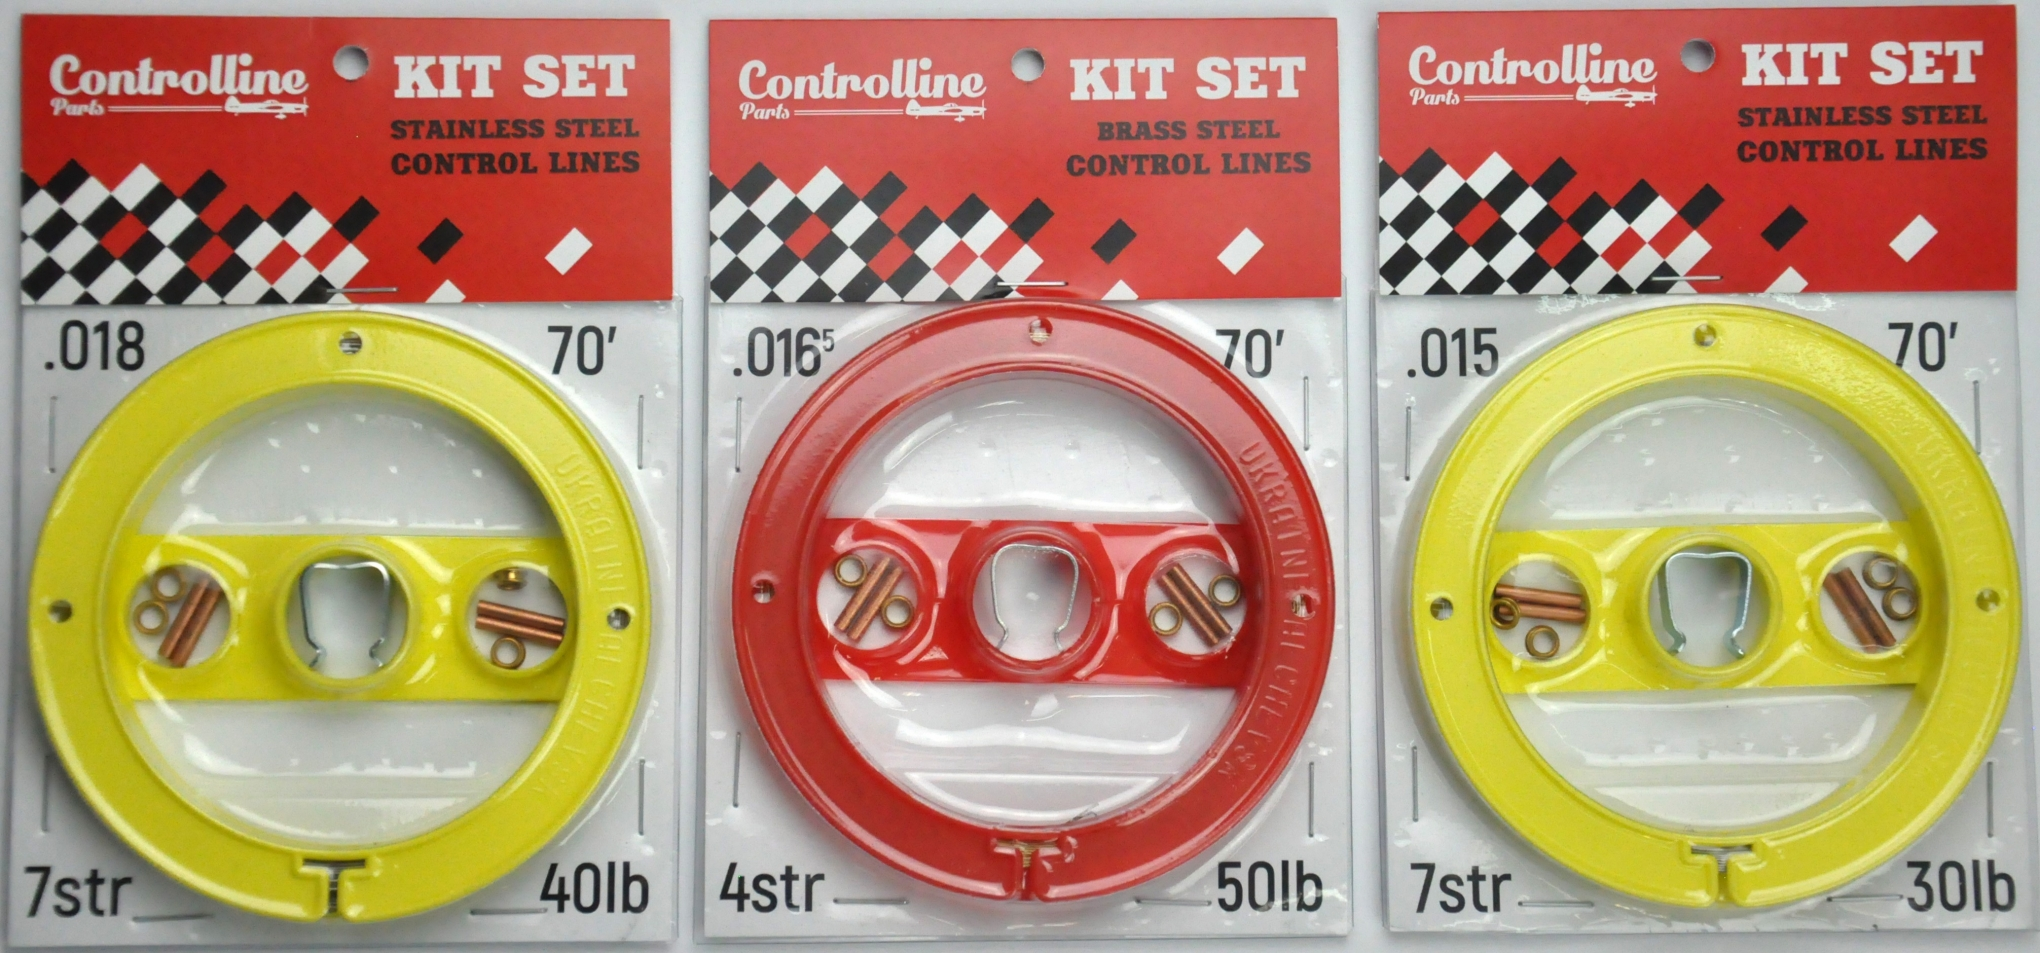 KIT SET CONTROL LINES .018 IN 70 FEET 7 STRAND 40 LB